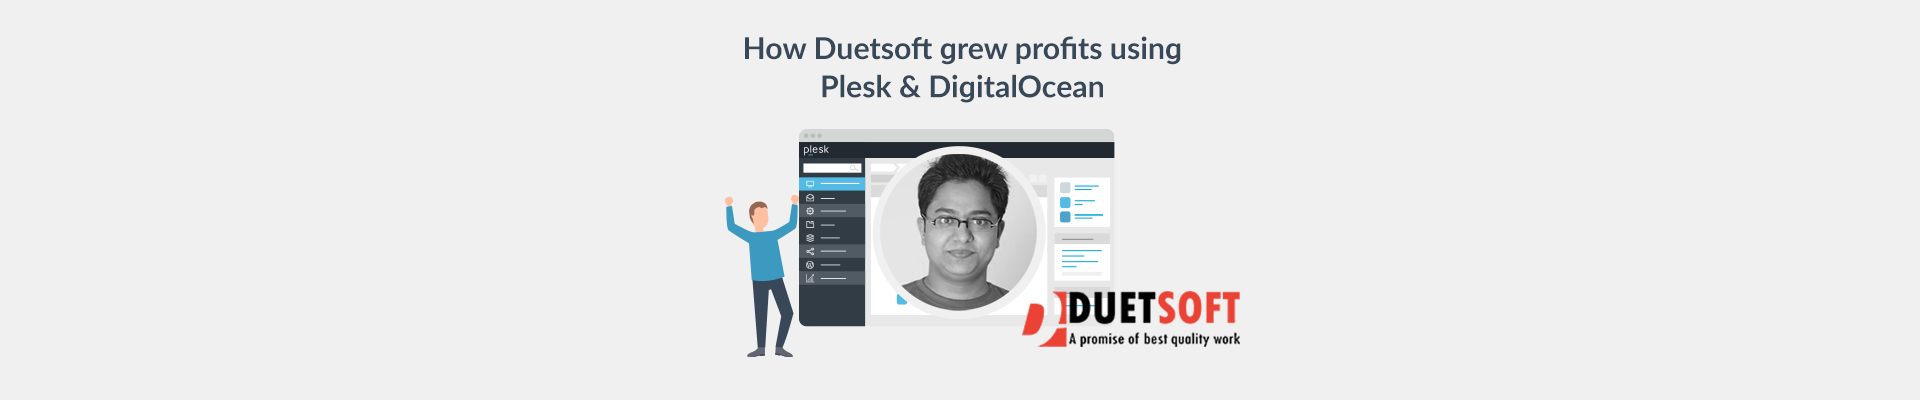 Duetsoft success story with Plesk and DigitalOcean - Plesk